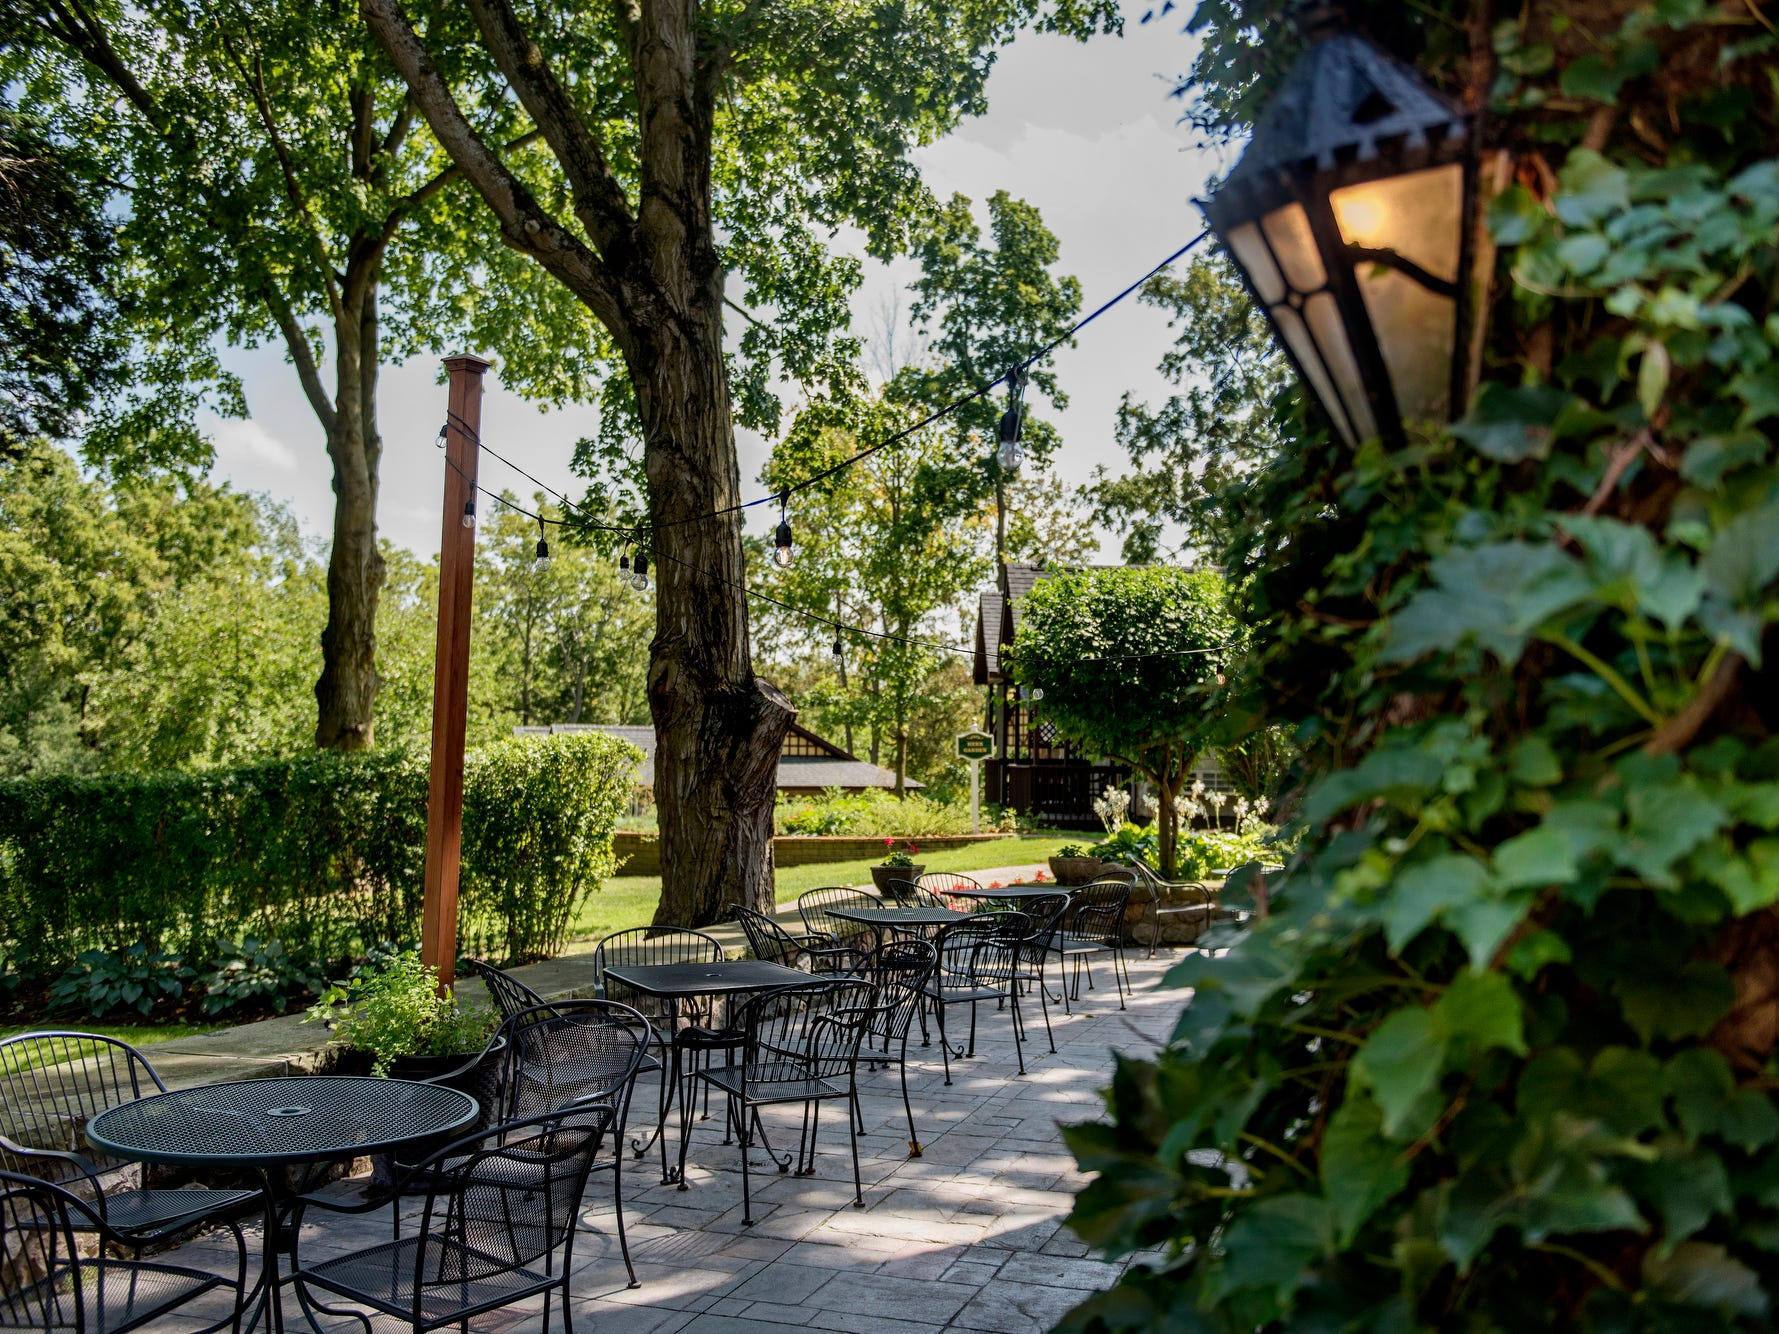 A view of the outdoor patio outside the pub on the garden level of the English Inn on Tuesday, Aug. 28, 2018, in Eaton Rapids. The 17-room mansion was once the home of Oldsmobile president Irving Reuter and his wife, Janet.